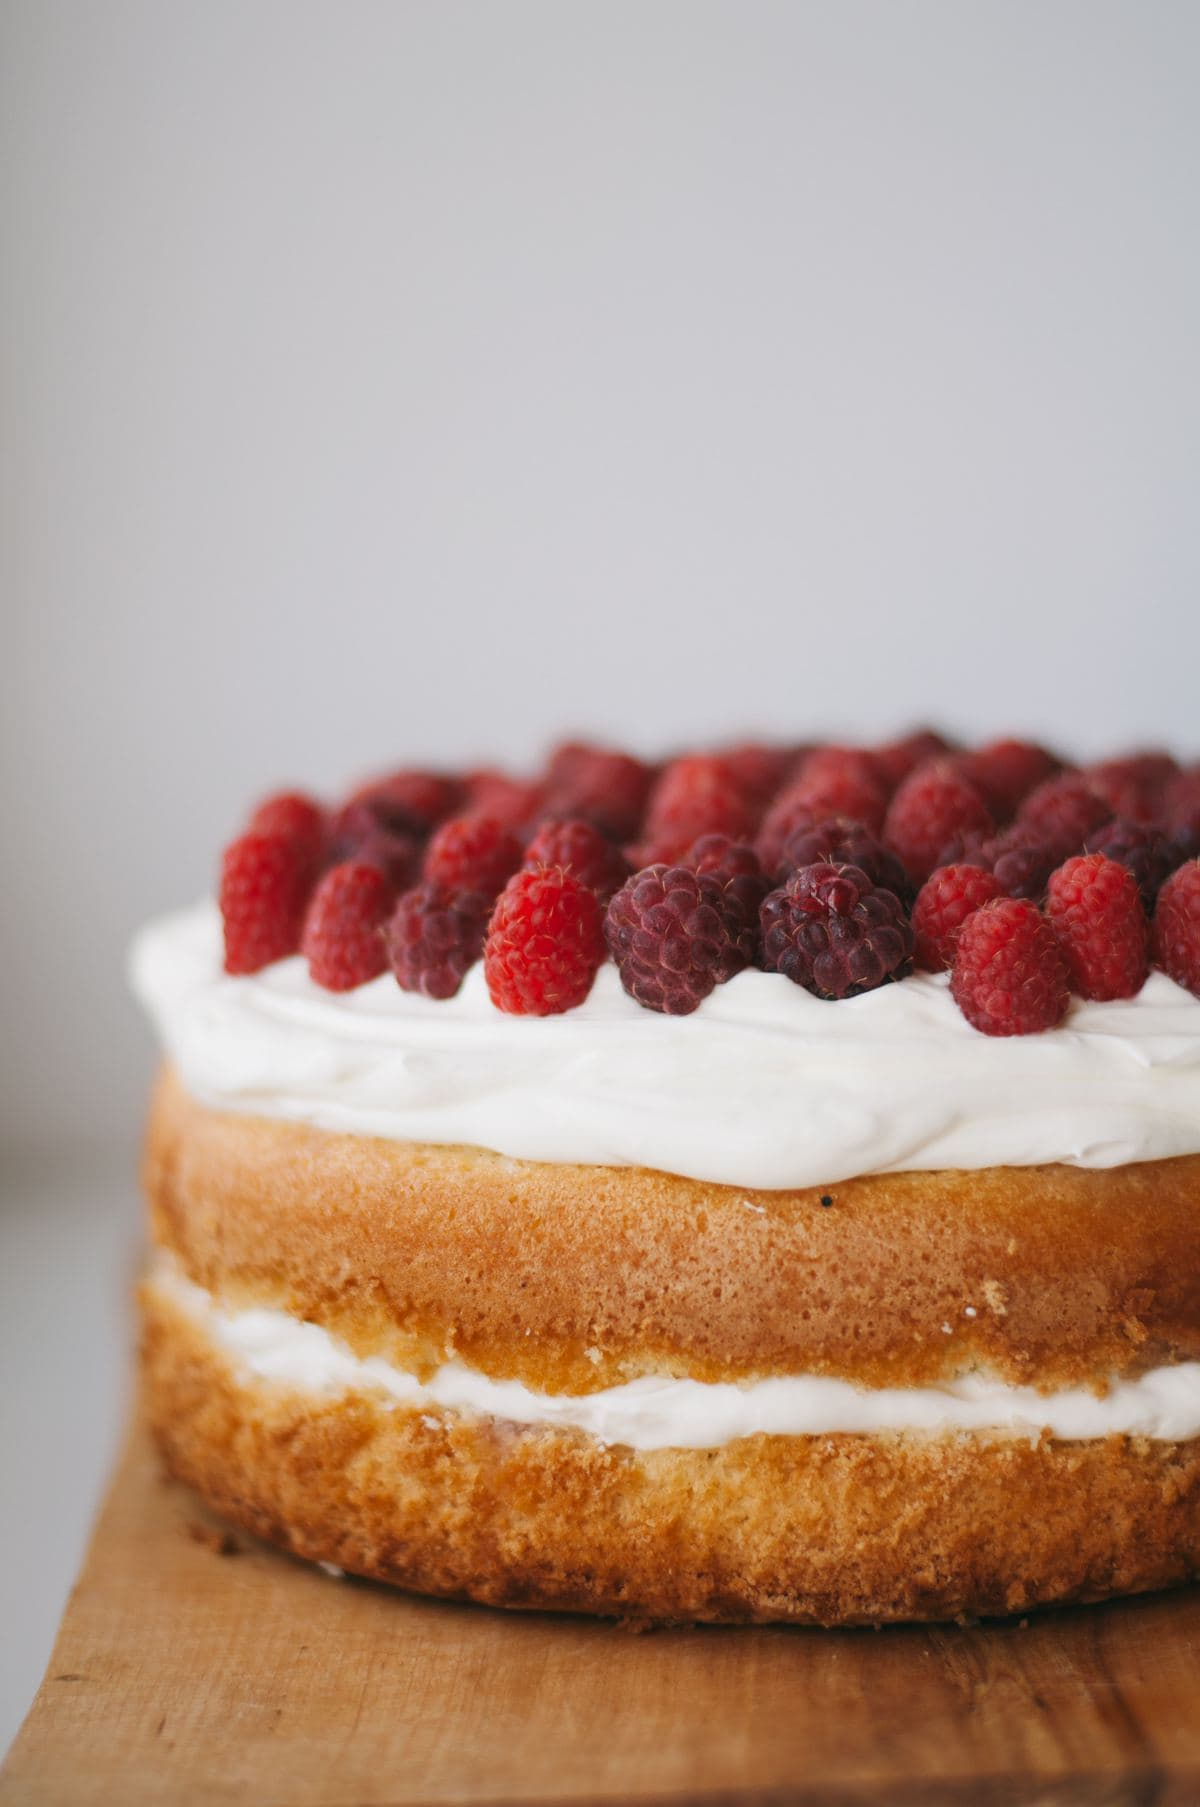 Sandwich cake topped with whipped cream and raspberries